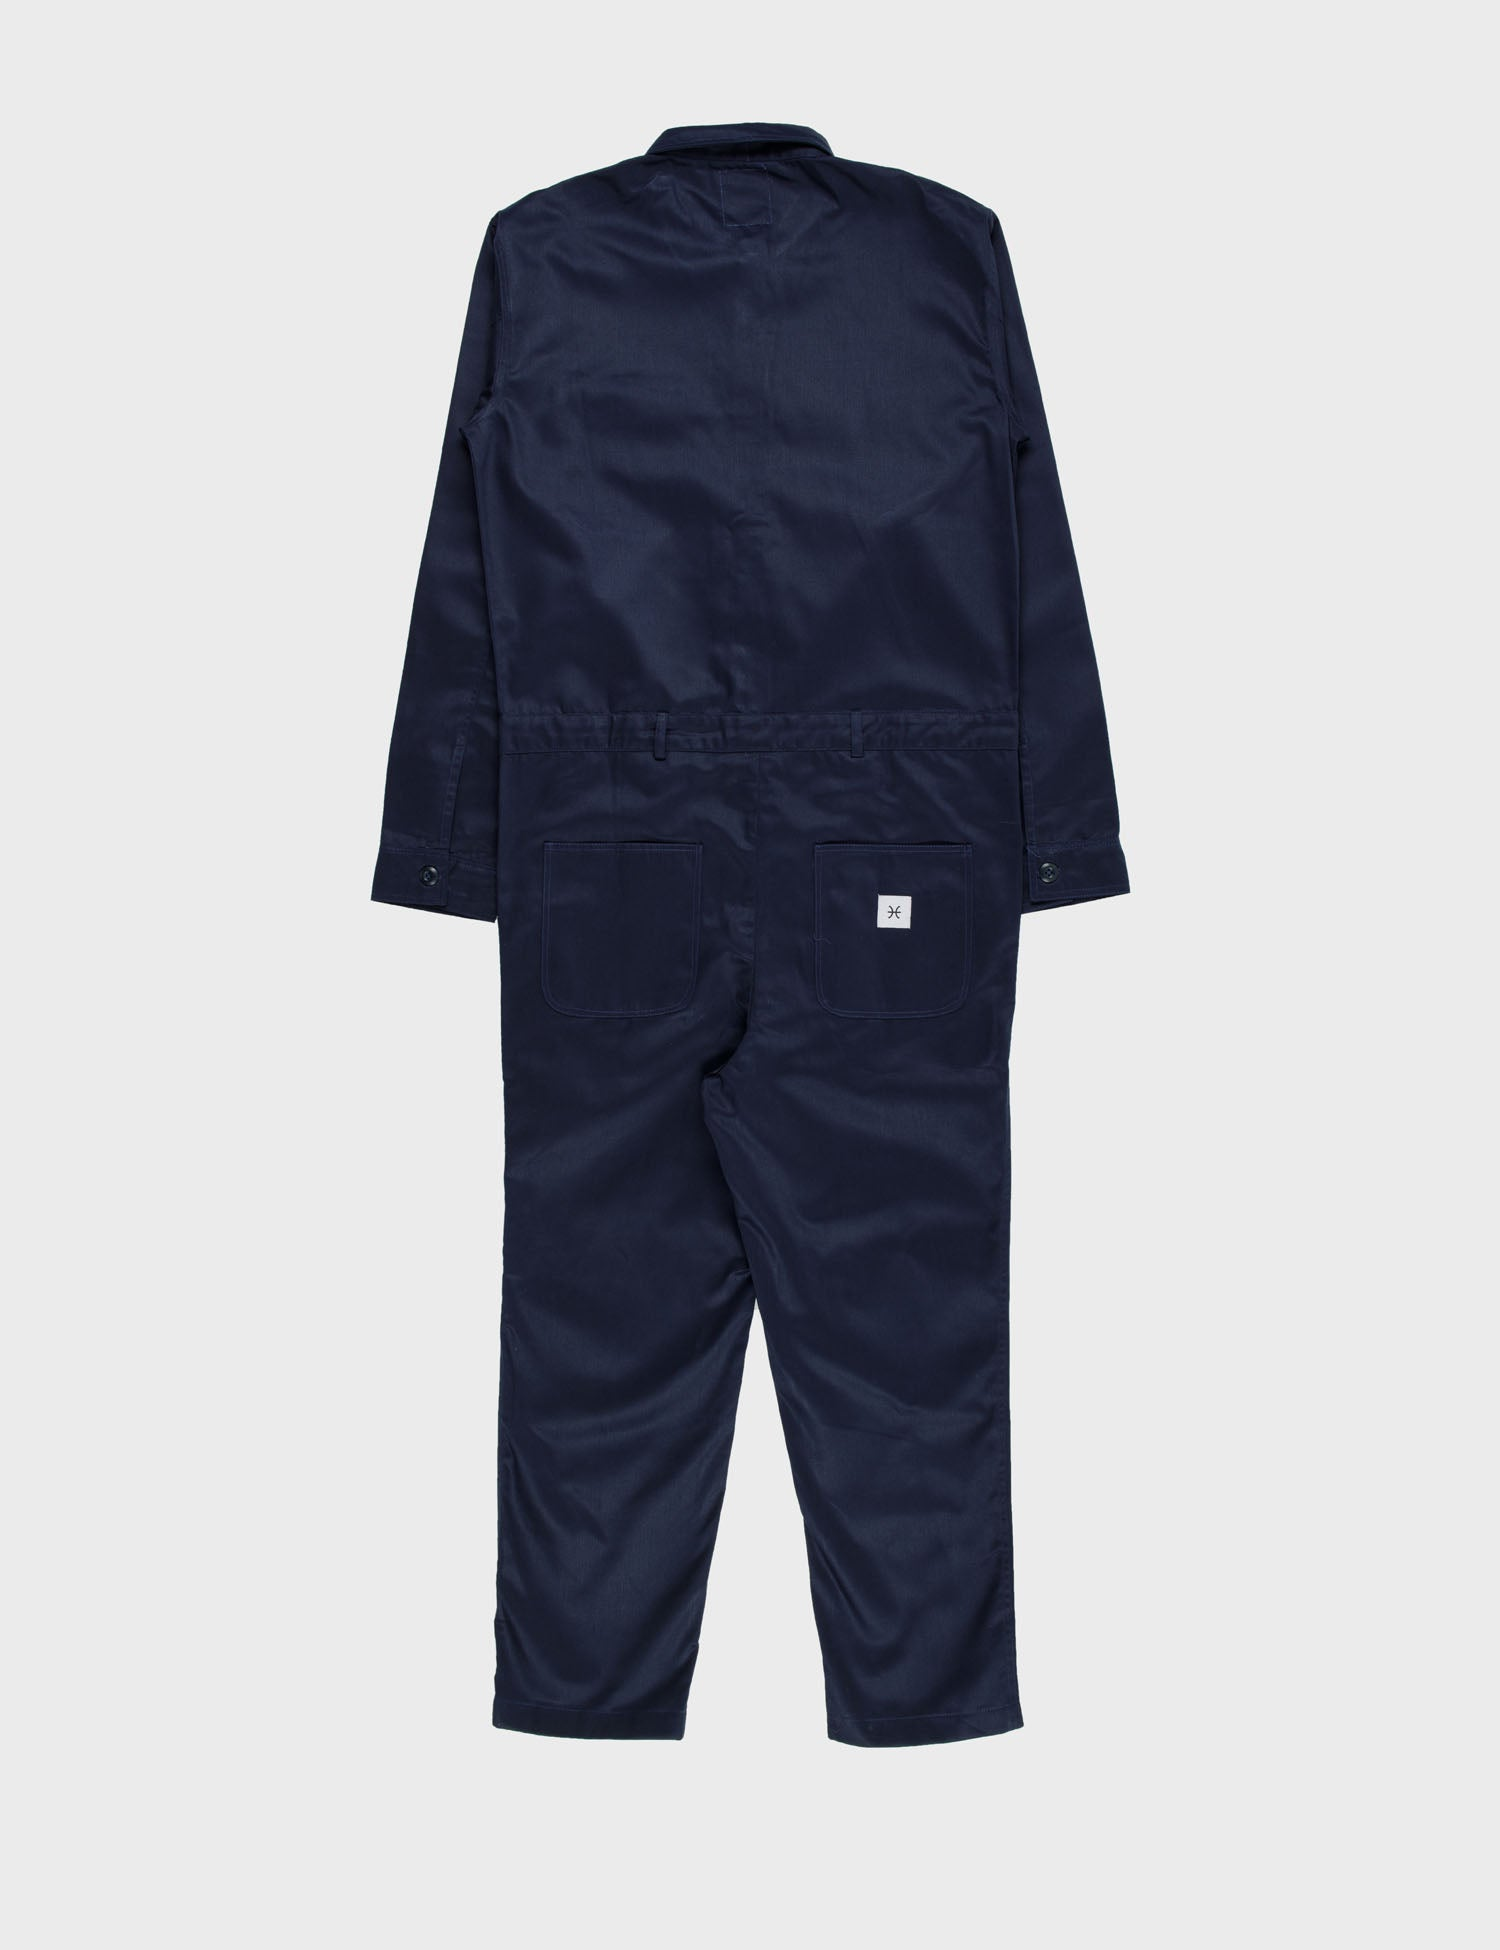 products/12H-coverall-navy-02.jpg